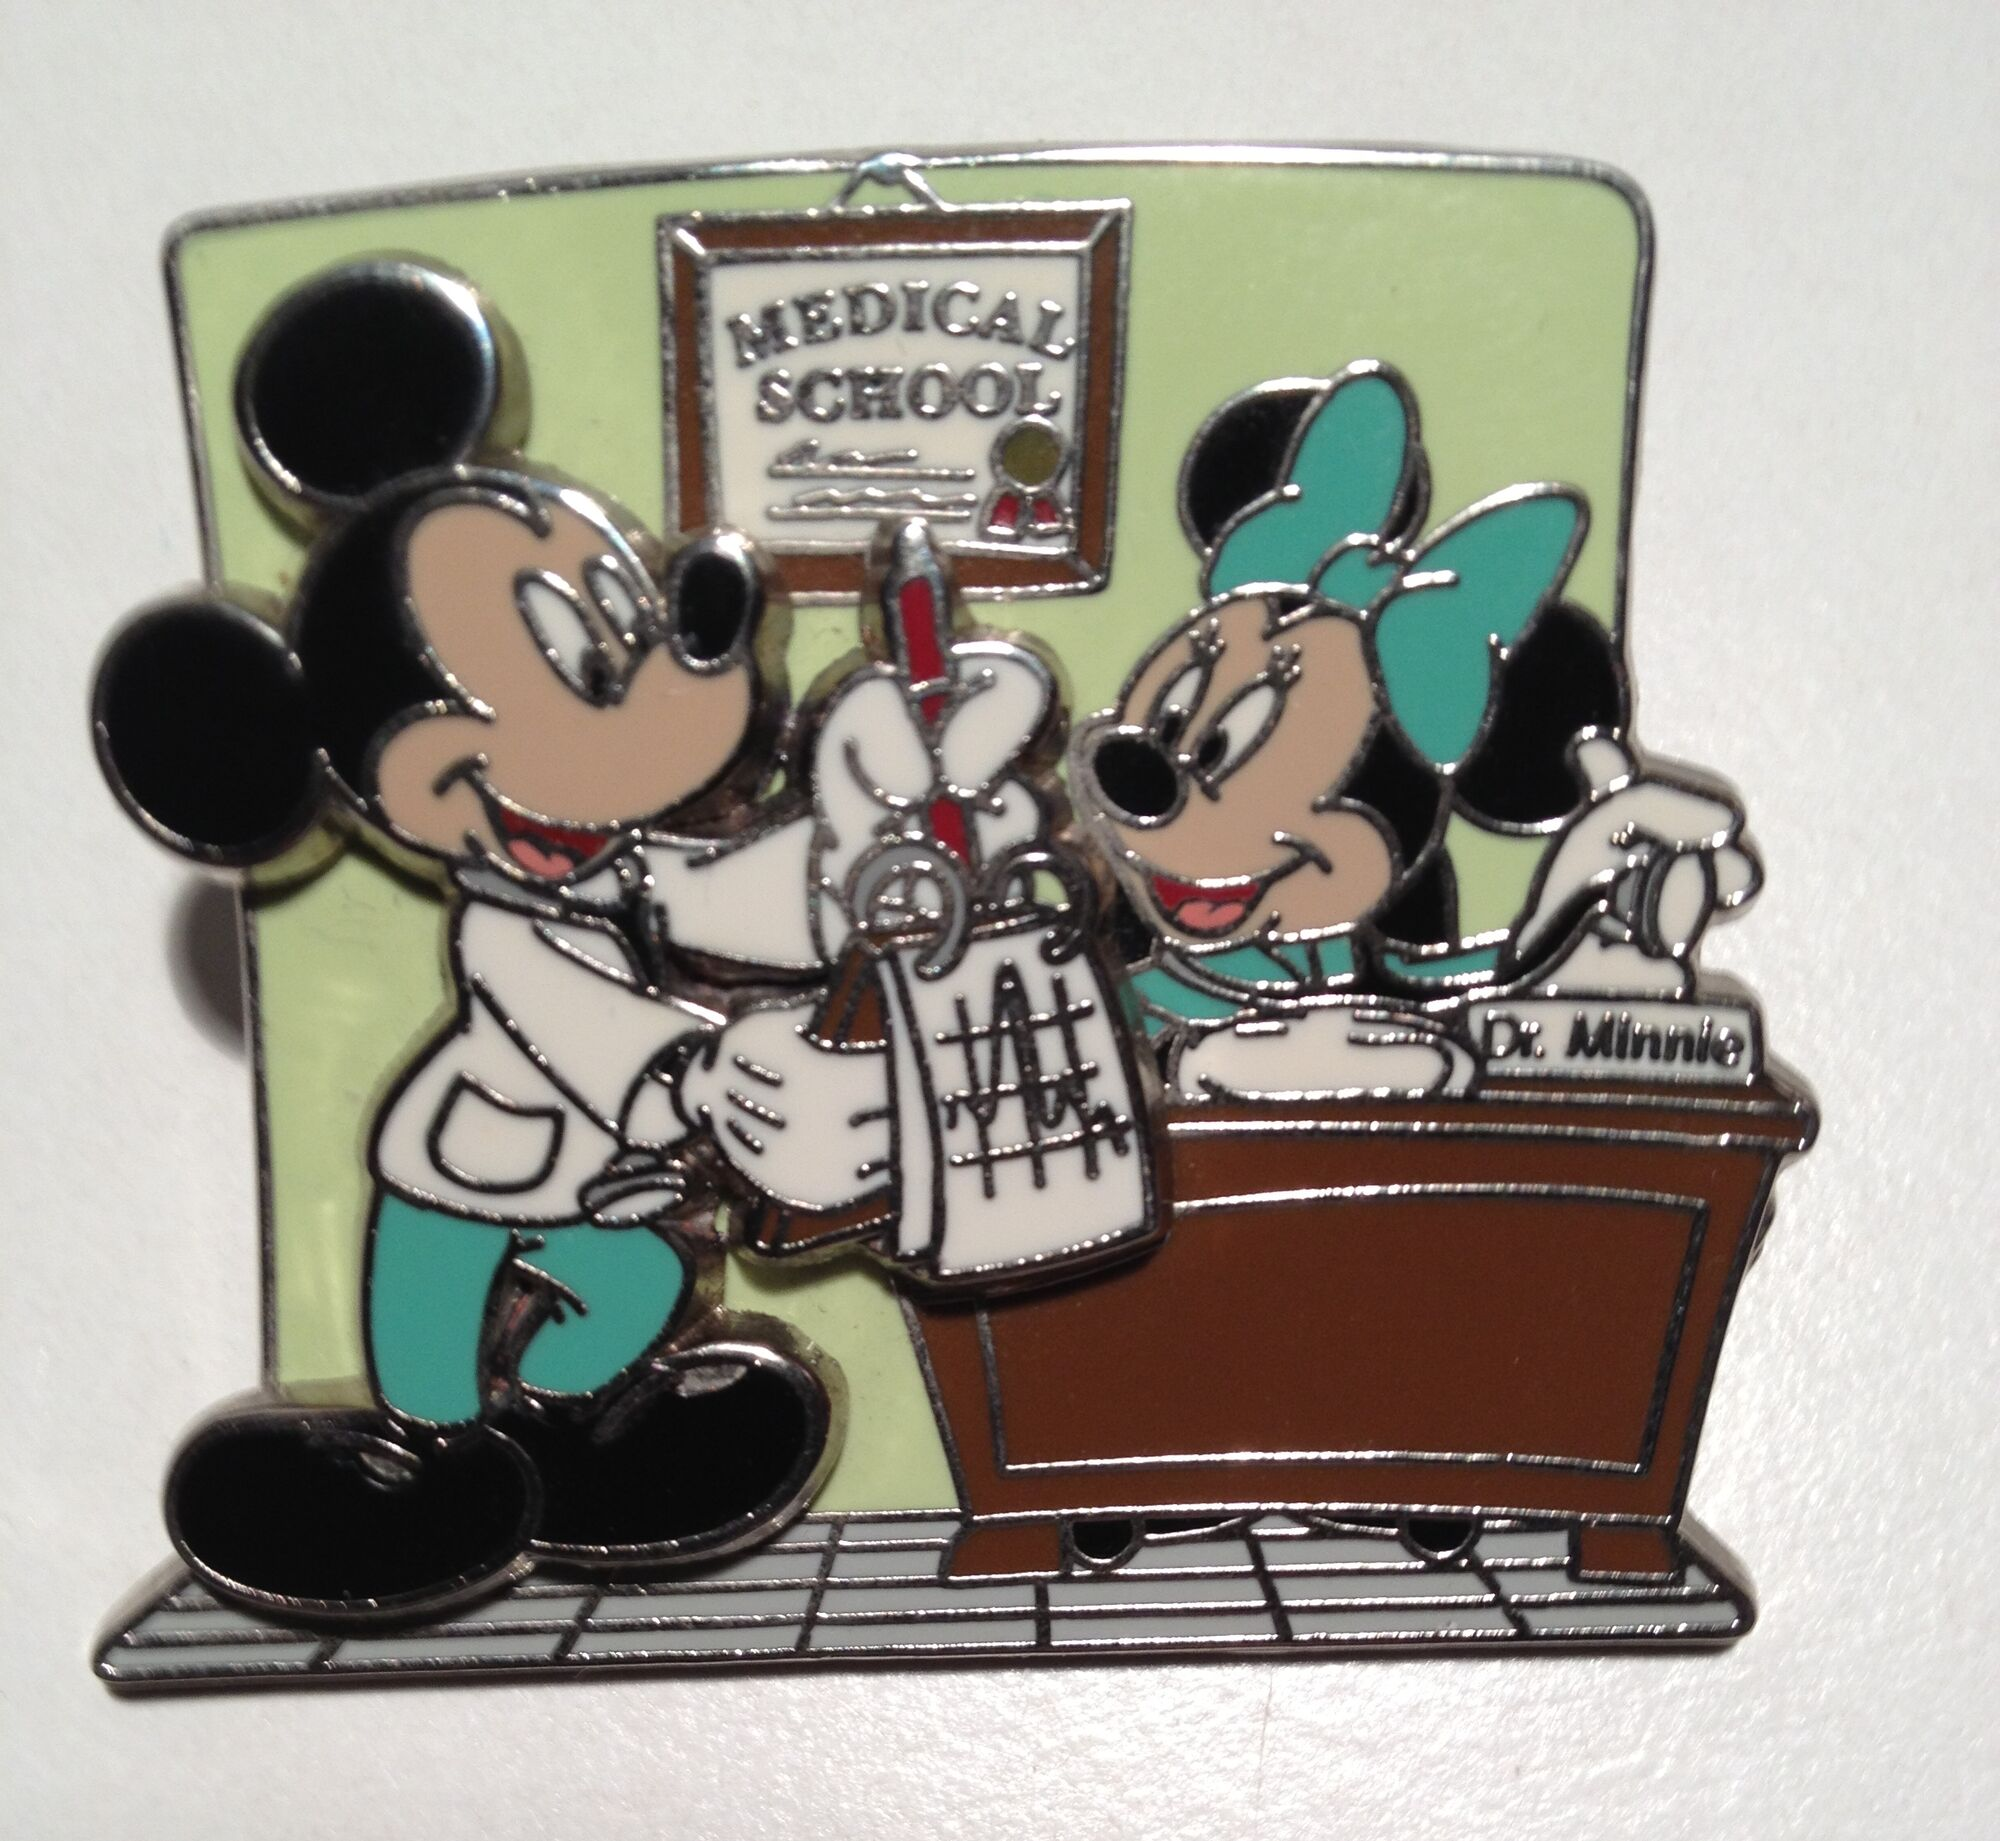 Disney Doctors Day Pins: Image - Doctor Day Pin.jpg